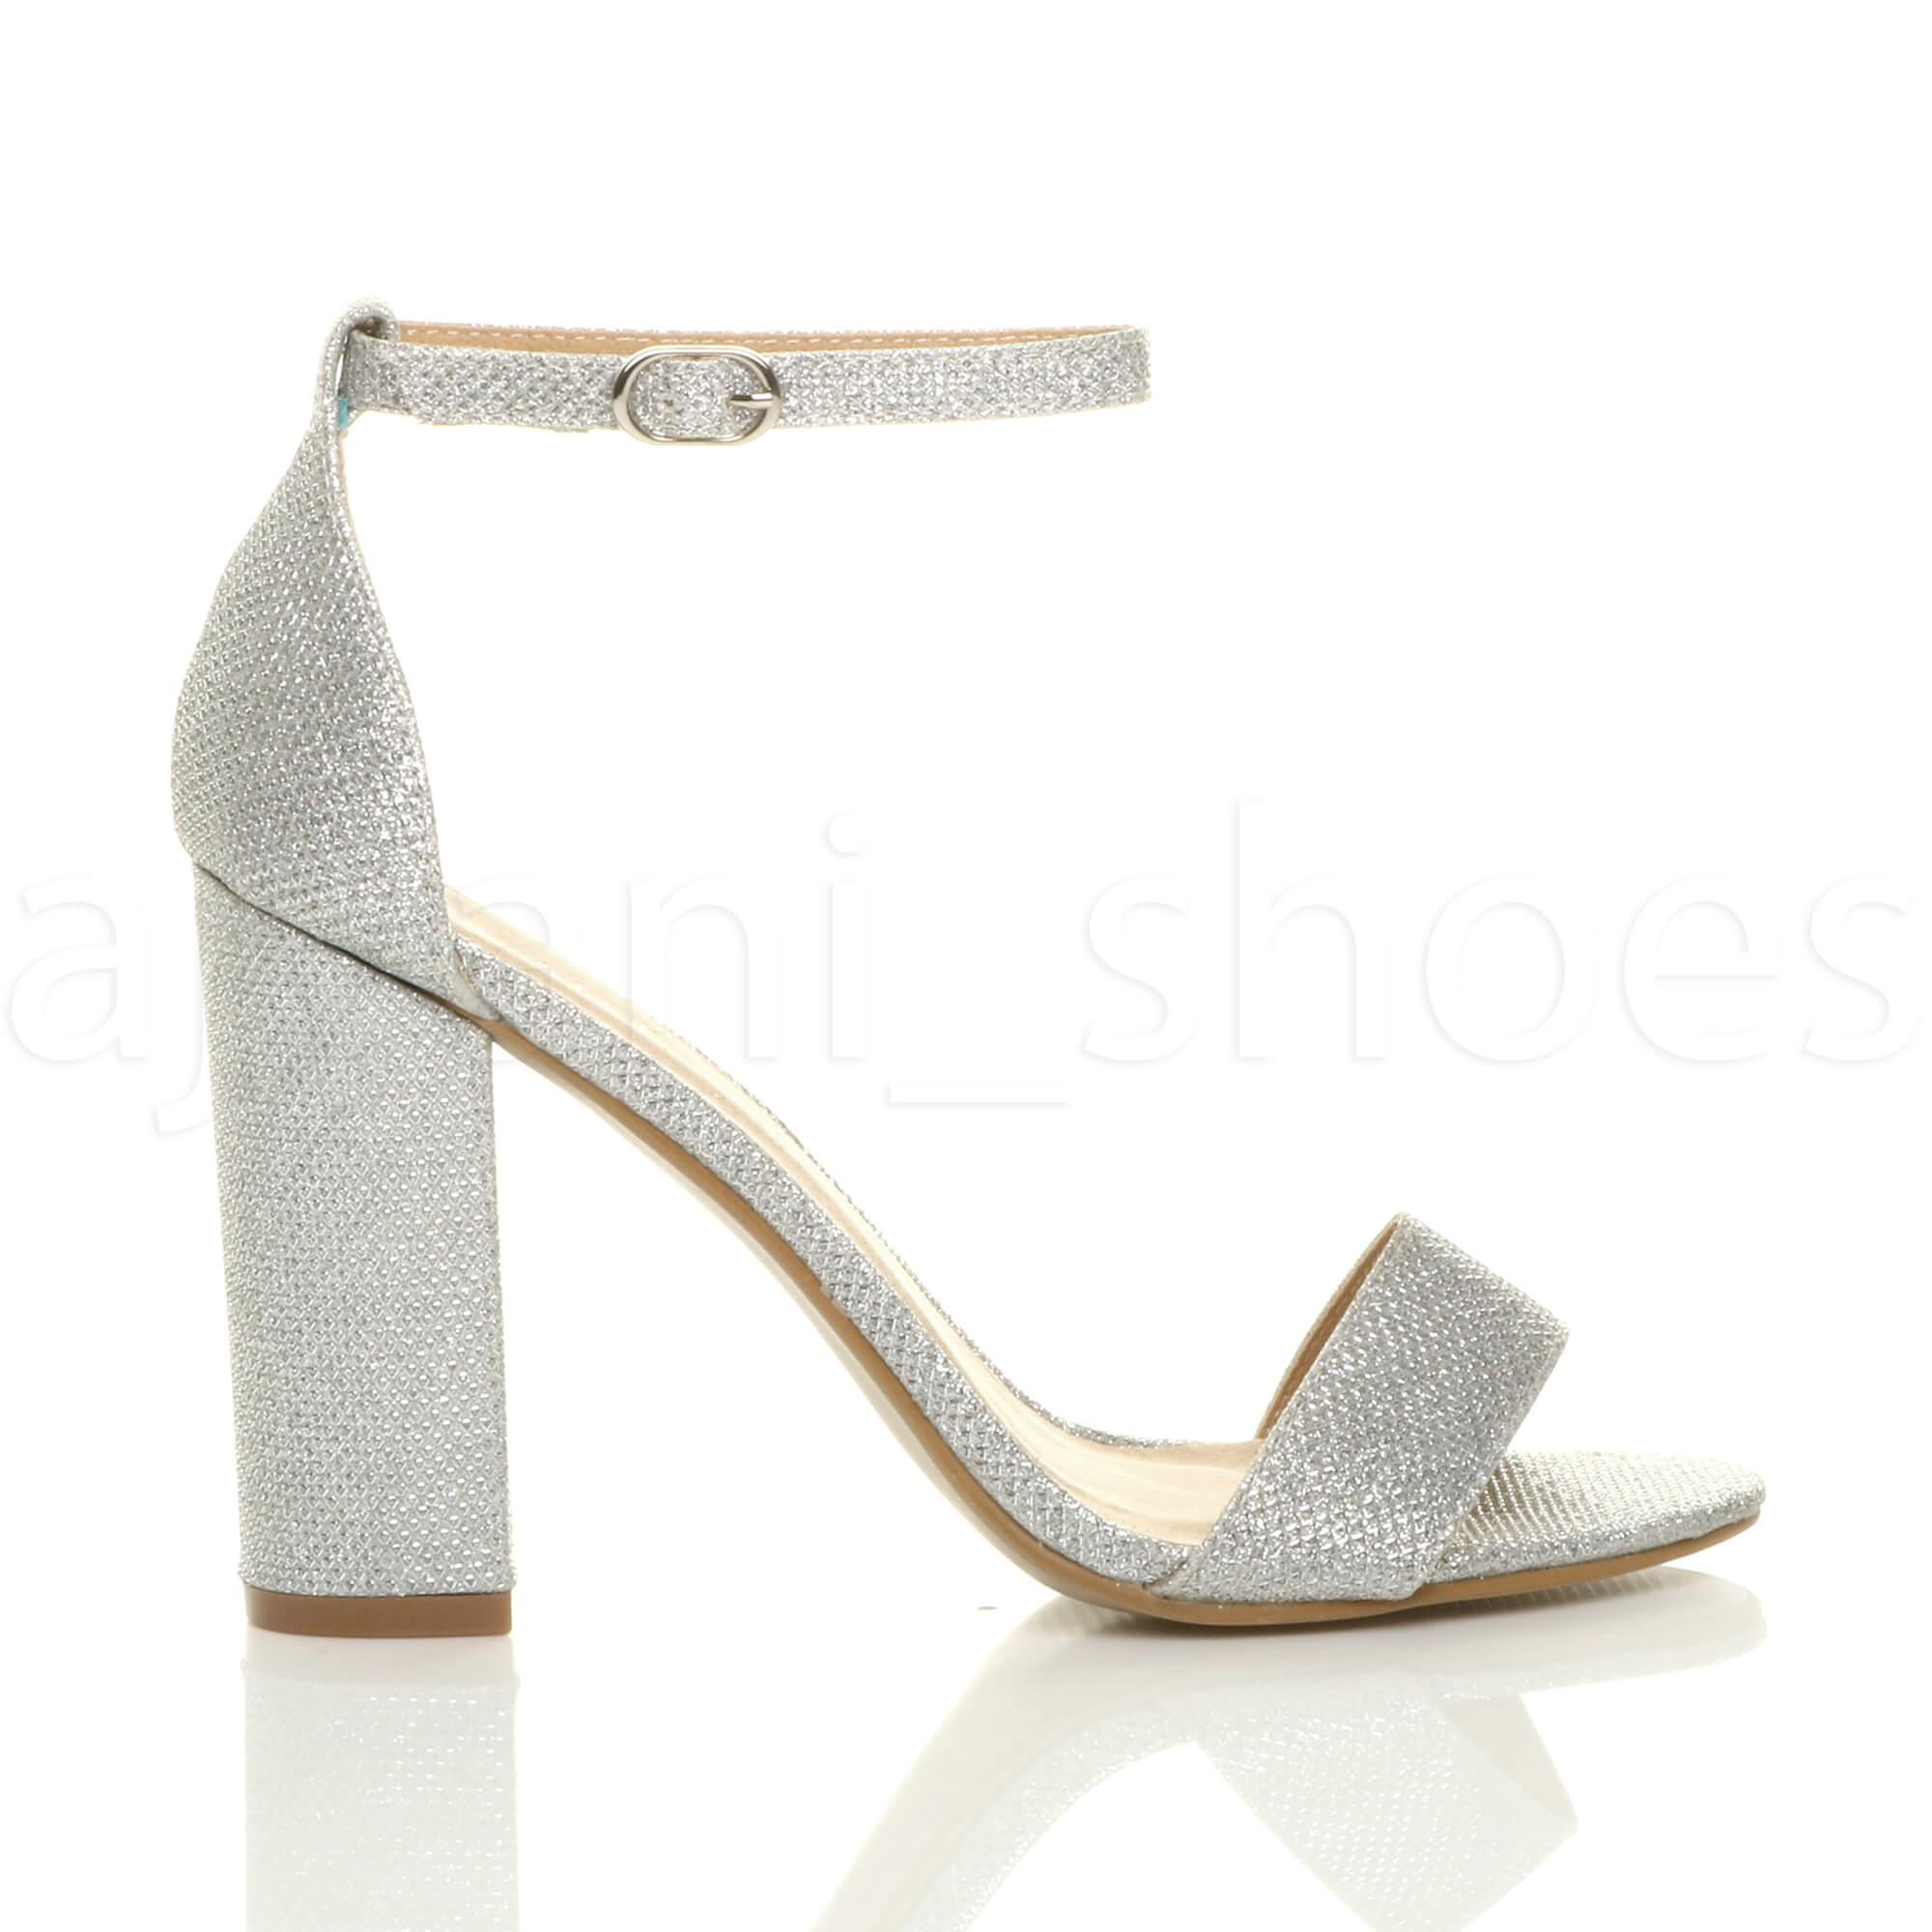 1e94c02f547f WOMENS LADIES BLOCK HIGH HEEL ANKLE STRAP PEEP TOE STRAPPY .